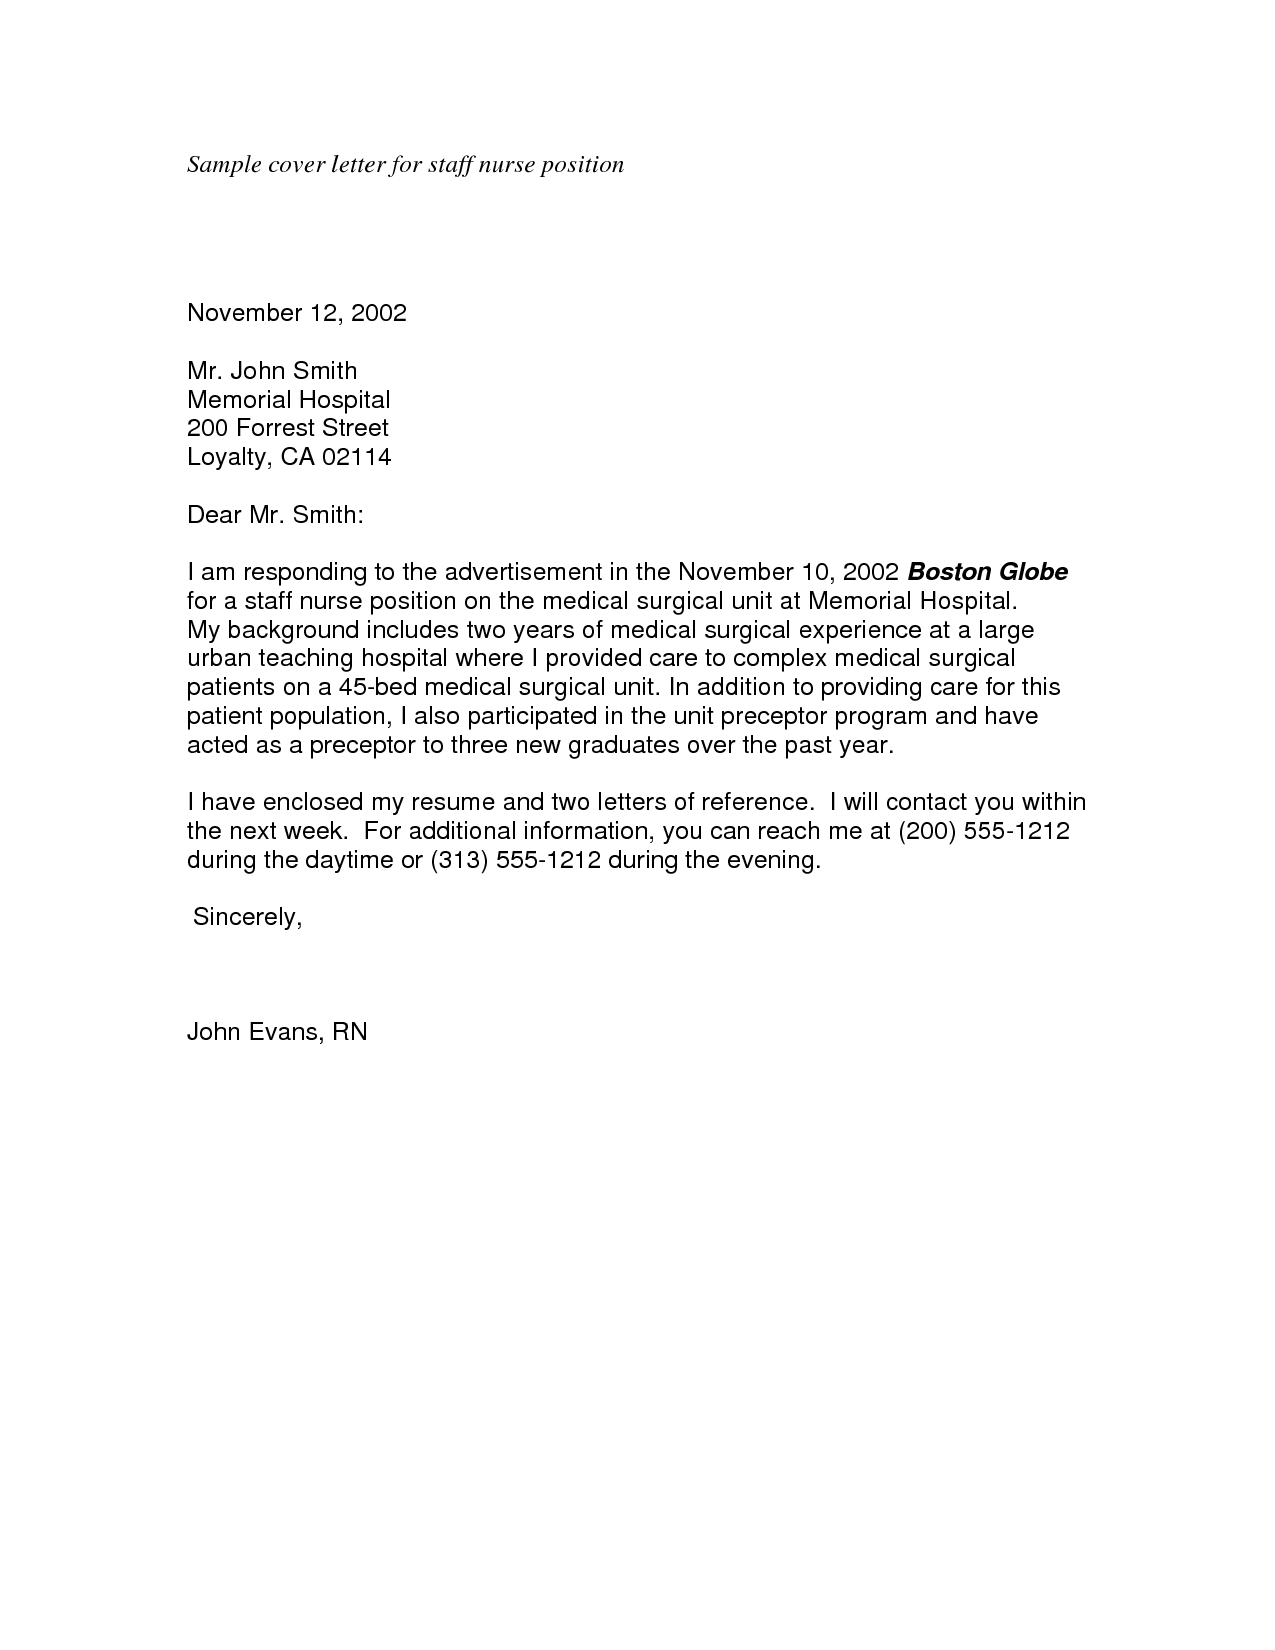 30 Example Of A Good Cover Letter For A Job | Cover Letters | Resume ...